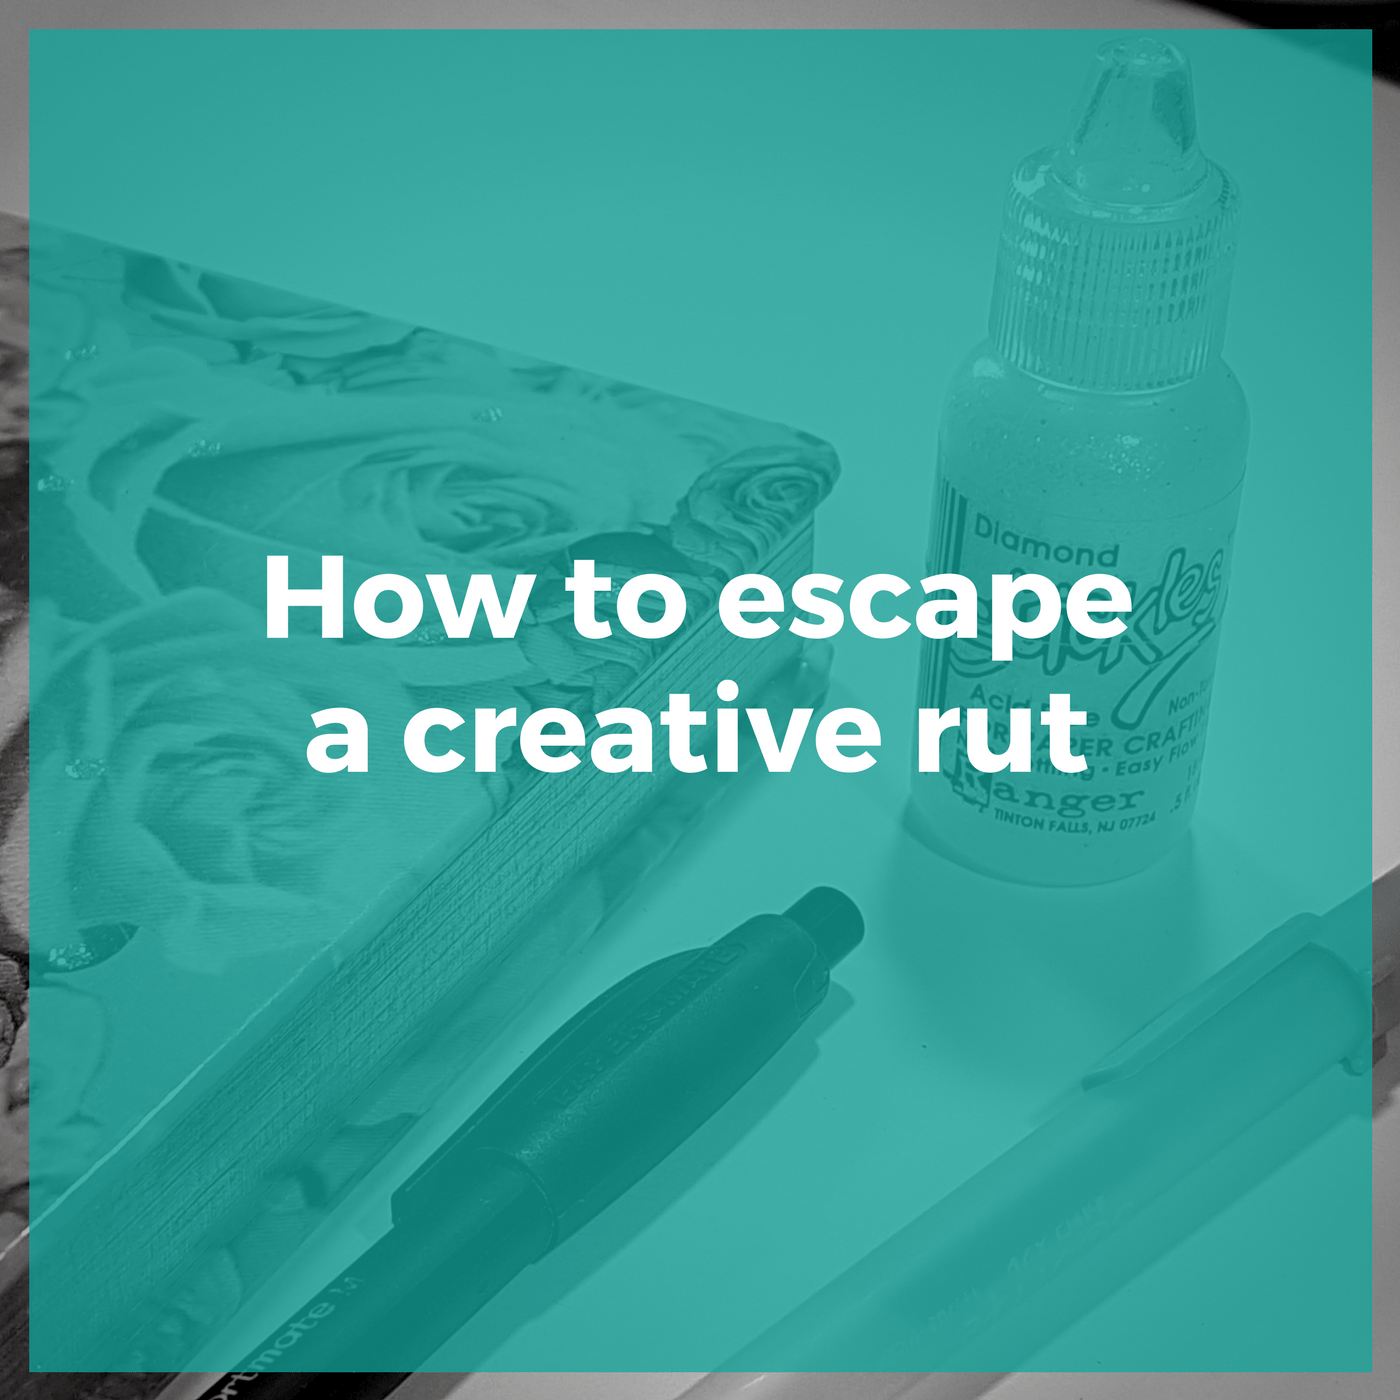 How to escape a creative rut